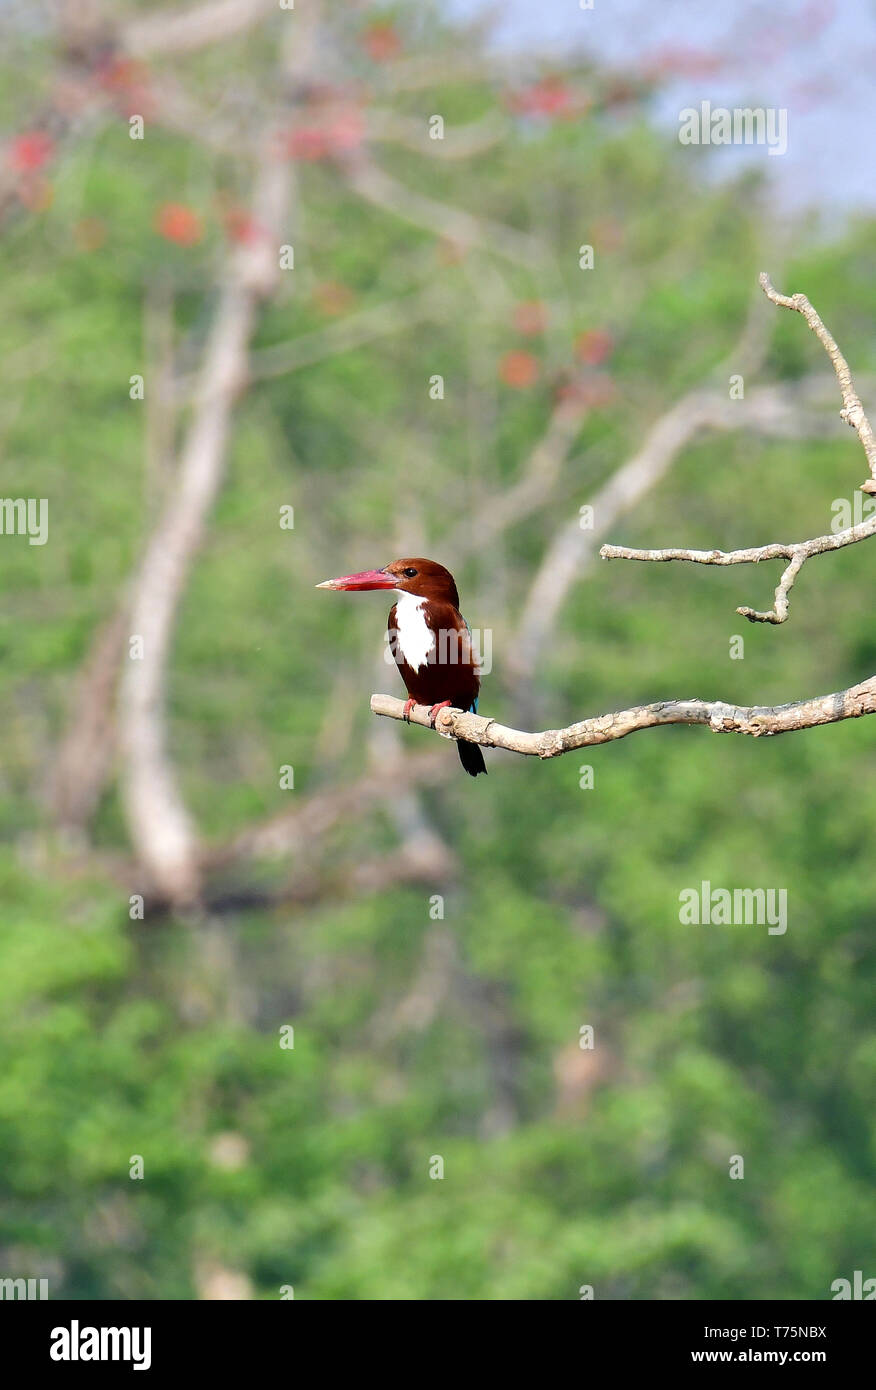 White-throated kingfisher, Braunliest, Halcyon smyrnensis, Chitwan National Park, Nepal, UNESCO World Heritage Site - Stock Image